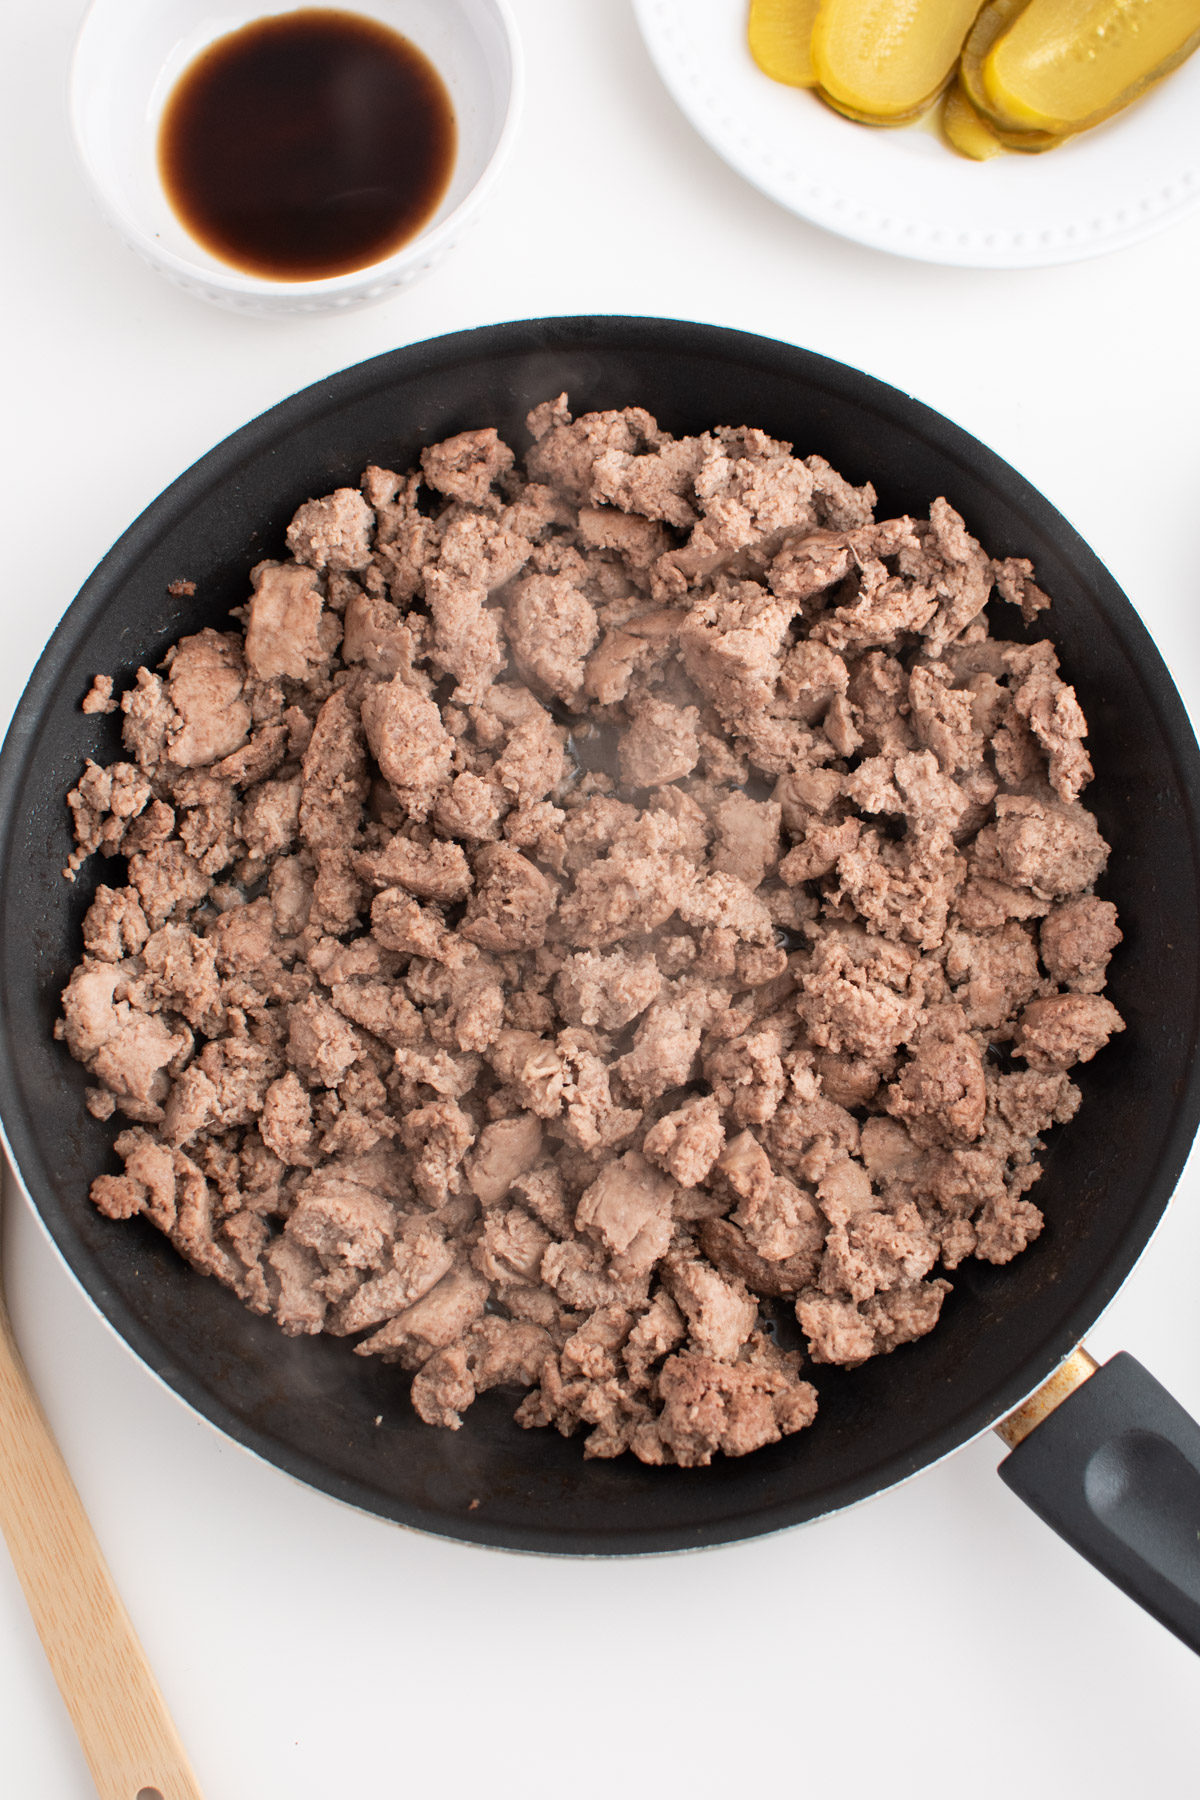 Cooked ground turkey in a black frying pan next to cheeseburger ingredients.